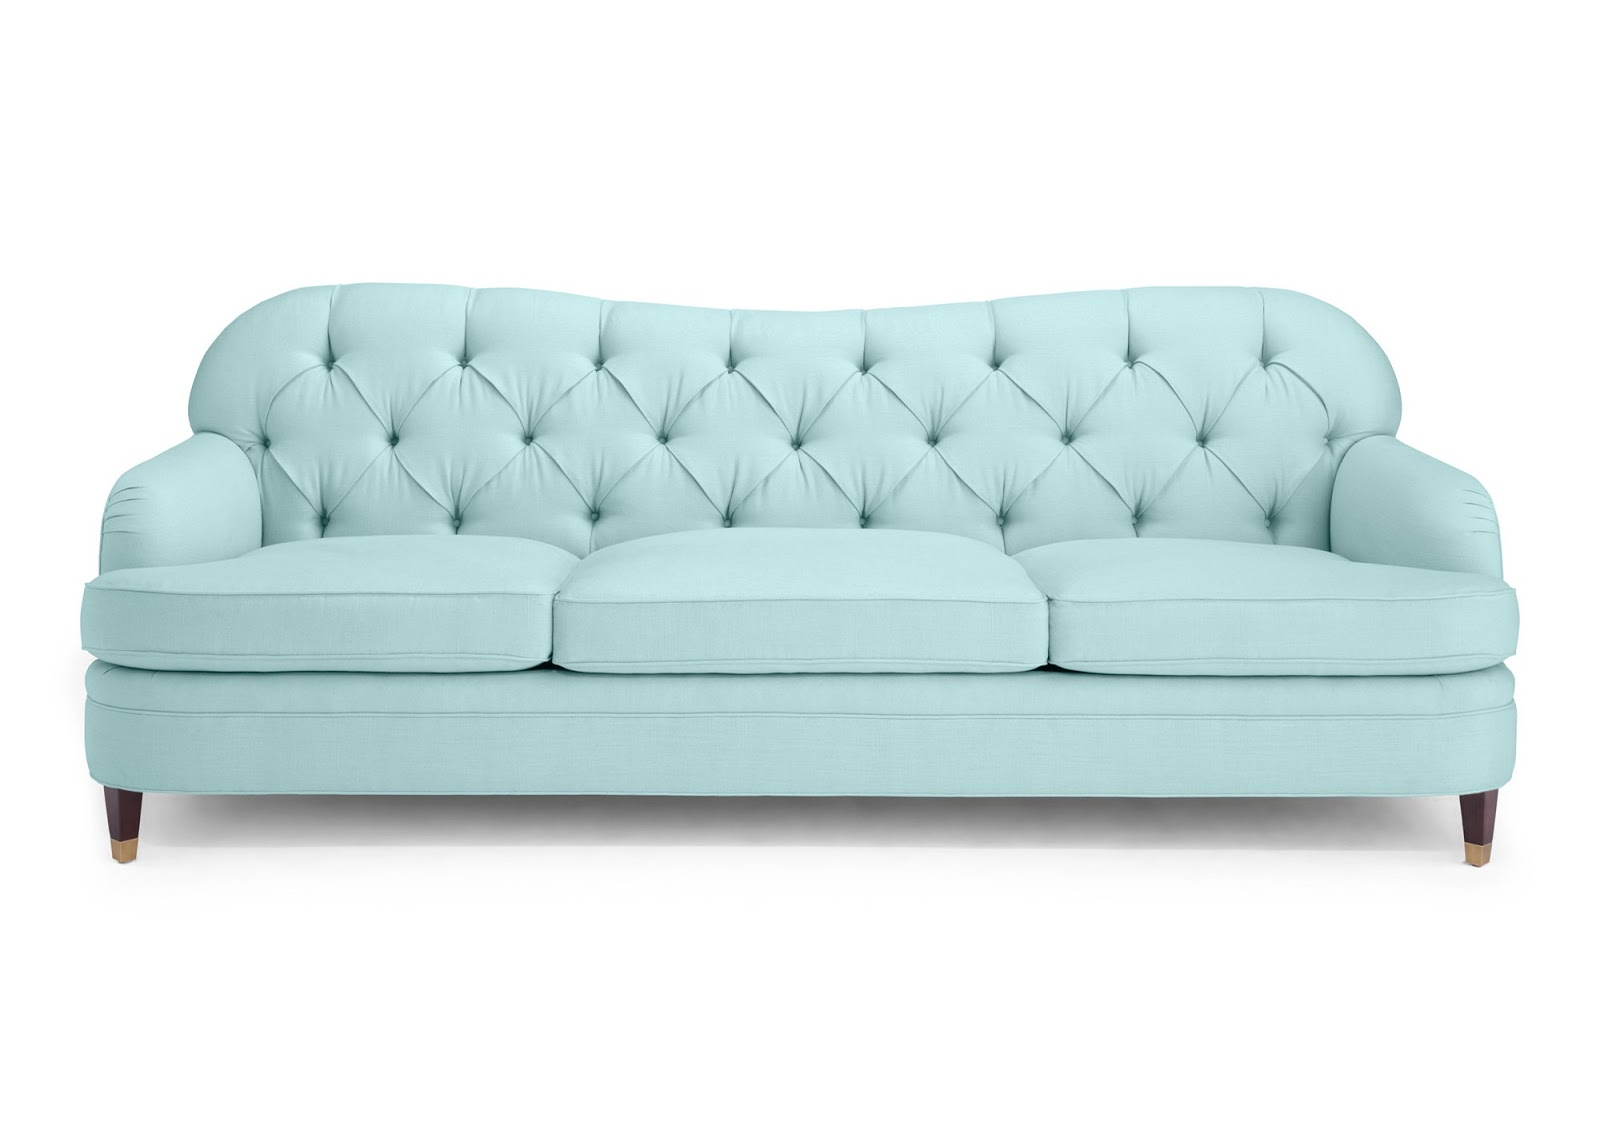 Baby Blue Tufted Drake Sofa Couch From Kate Spade